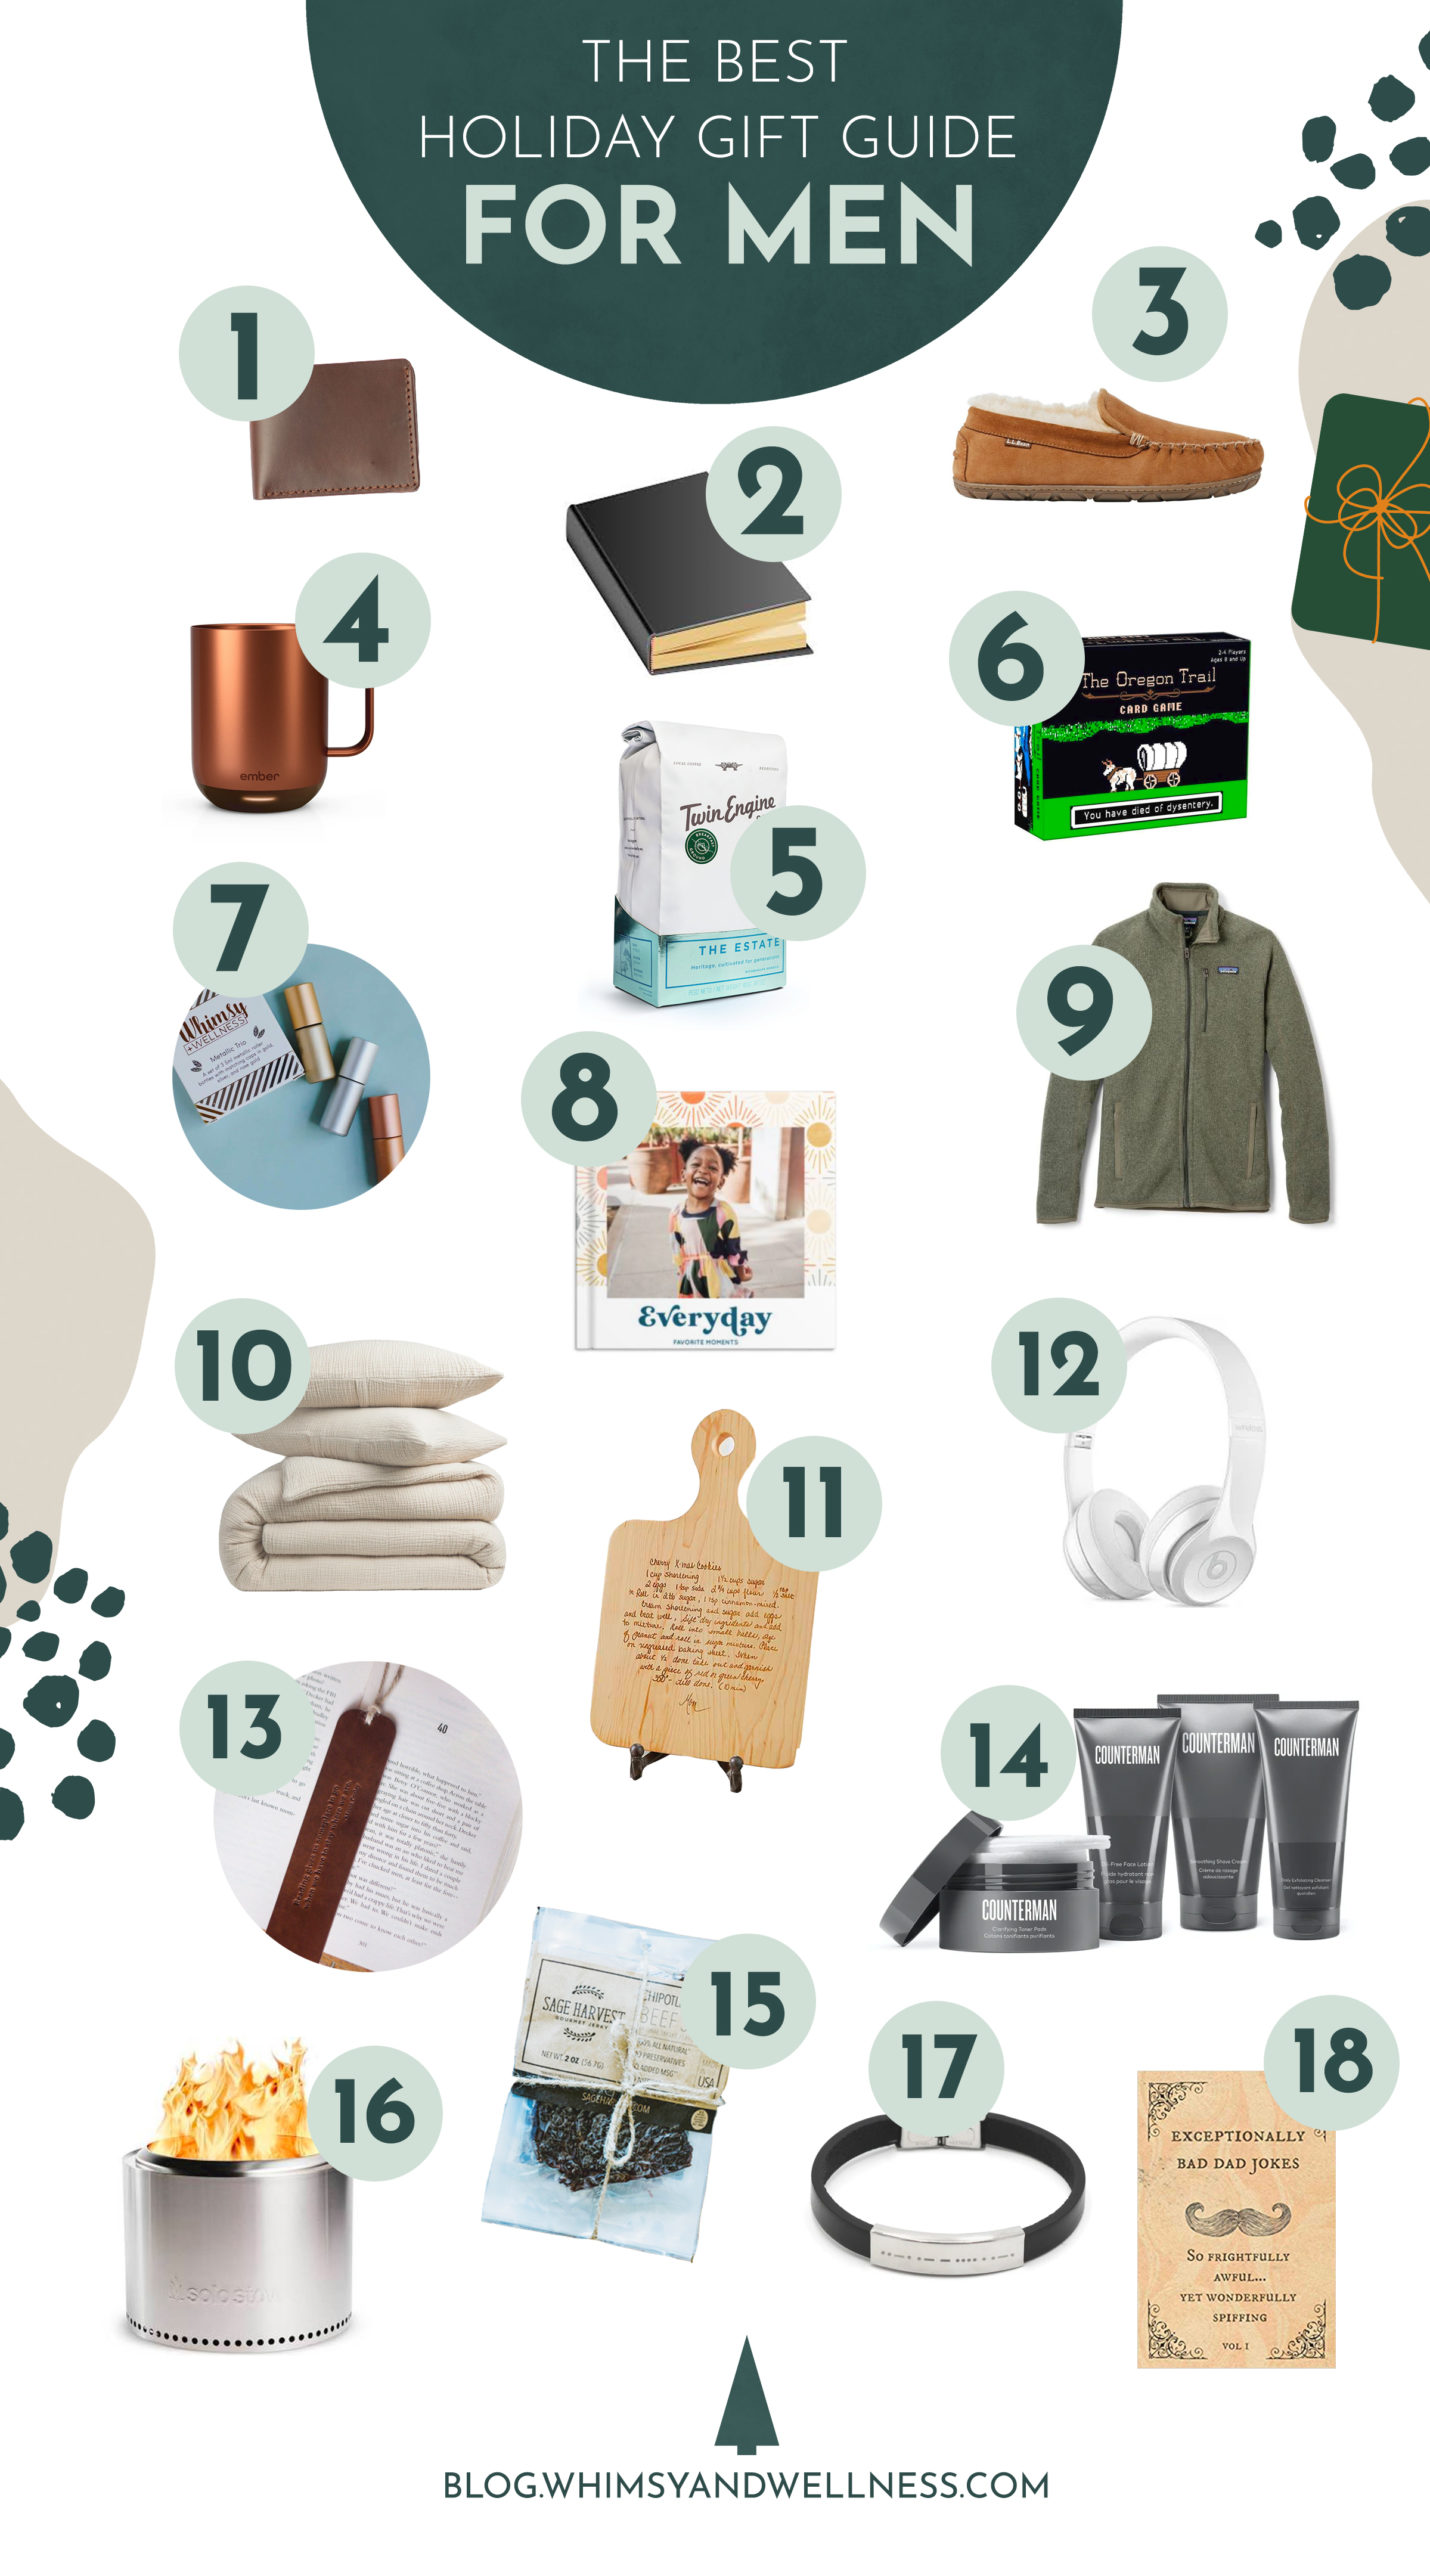 the best holiday gift guide for men 2020 Thoughtful, Whimsical Gifts for Your Husband/Dad/Uncle/Brother/etc.